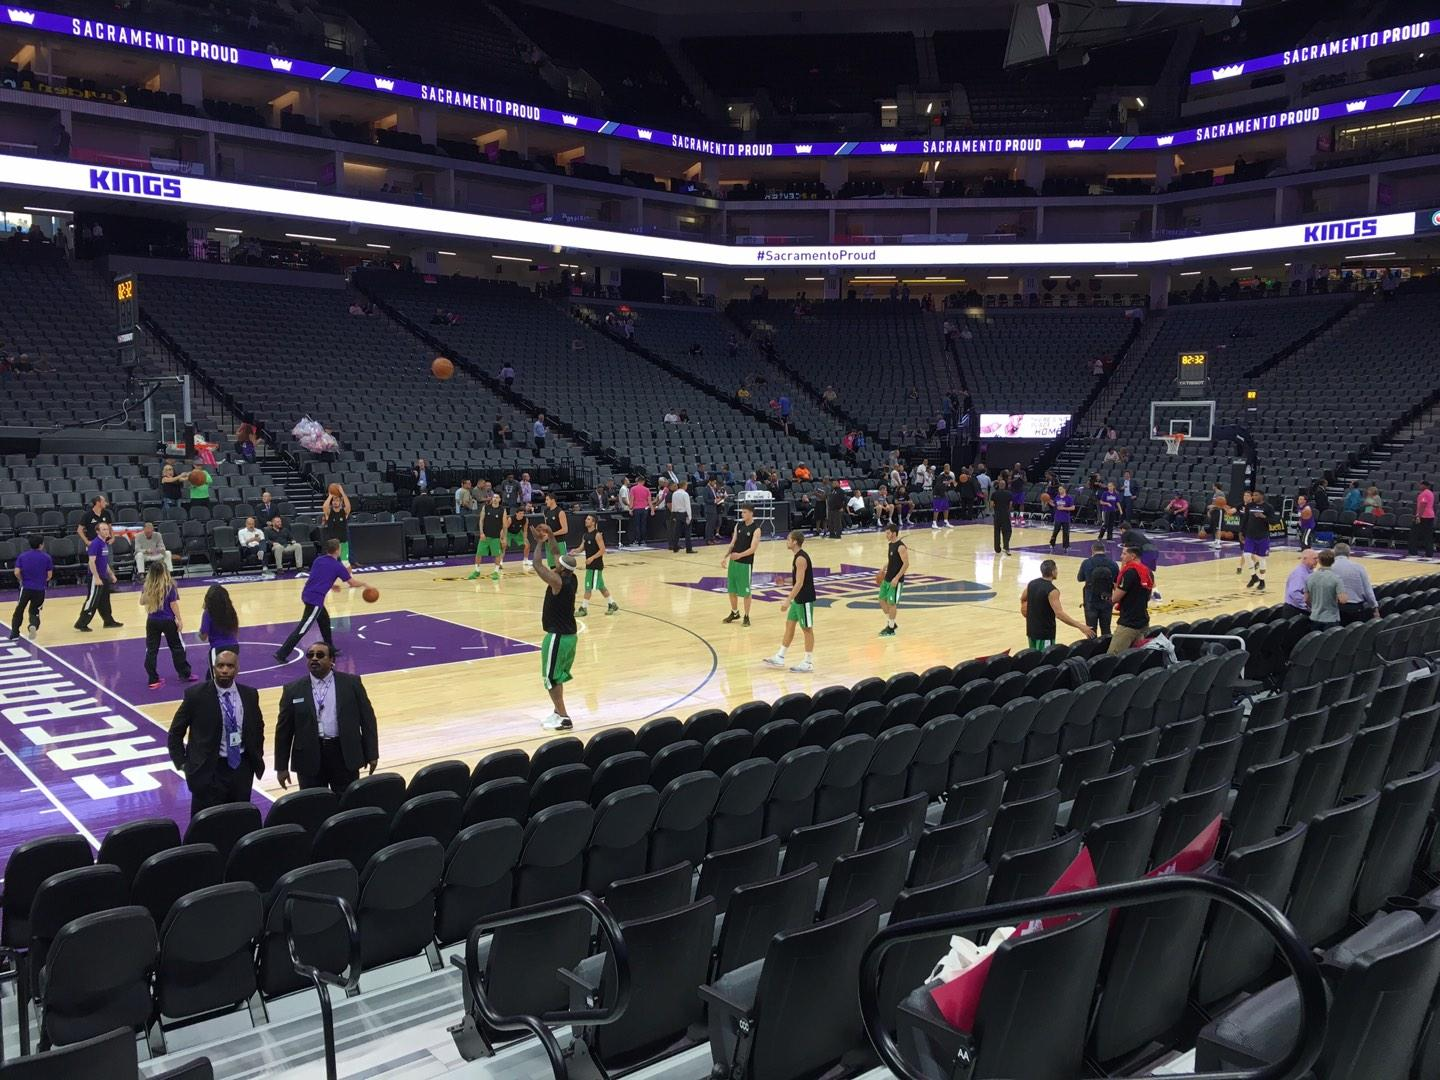 Golden 1 Center Secção 122 Fila Cc Lugar 1